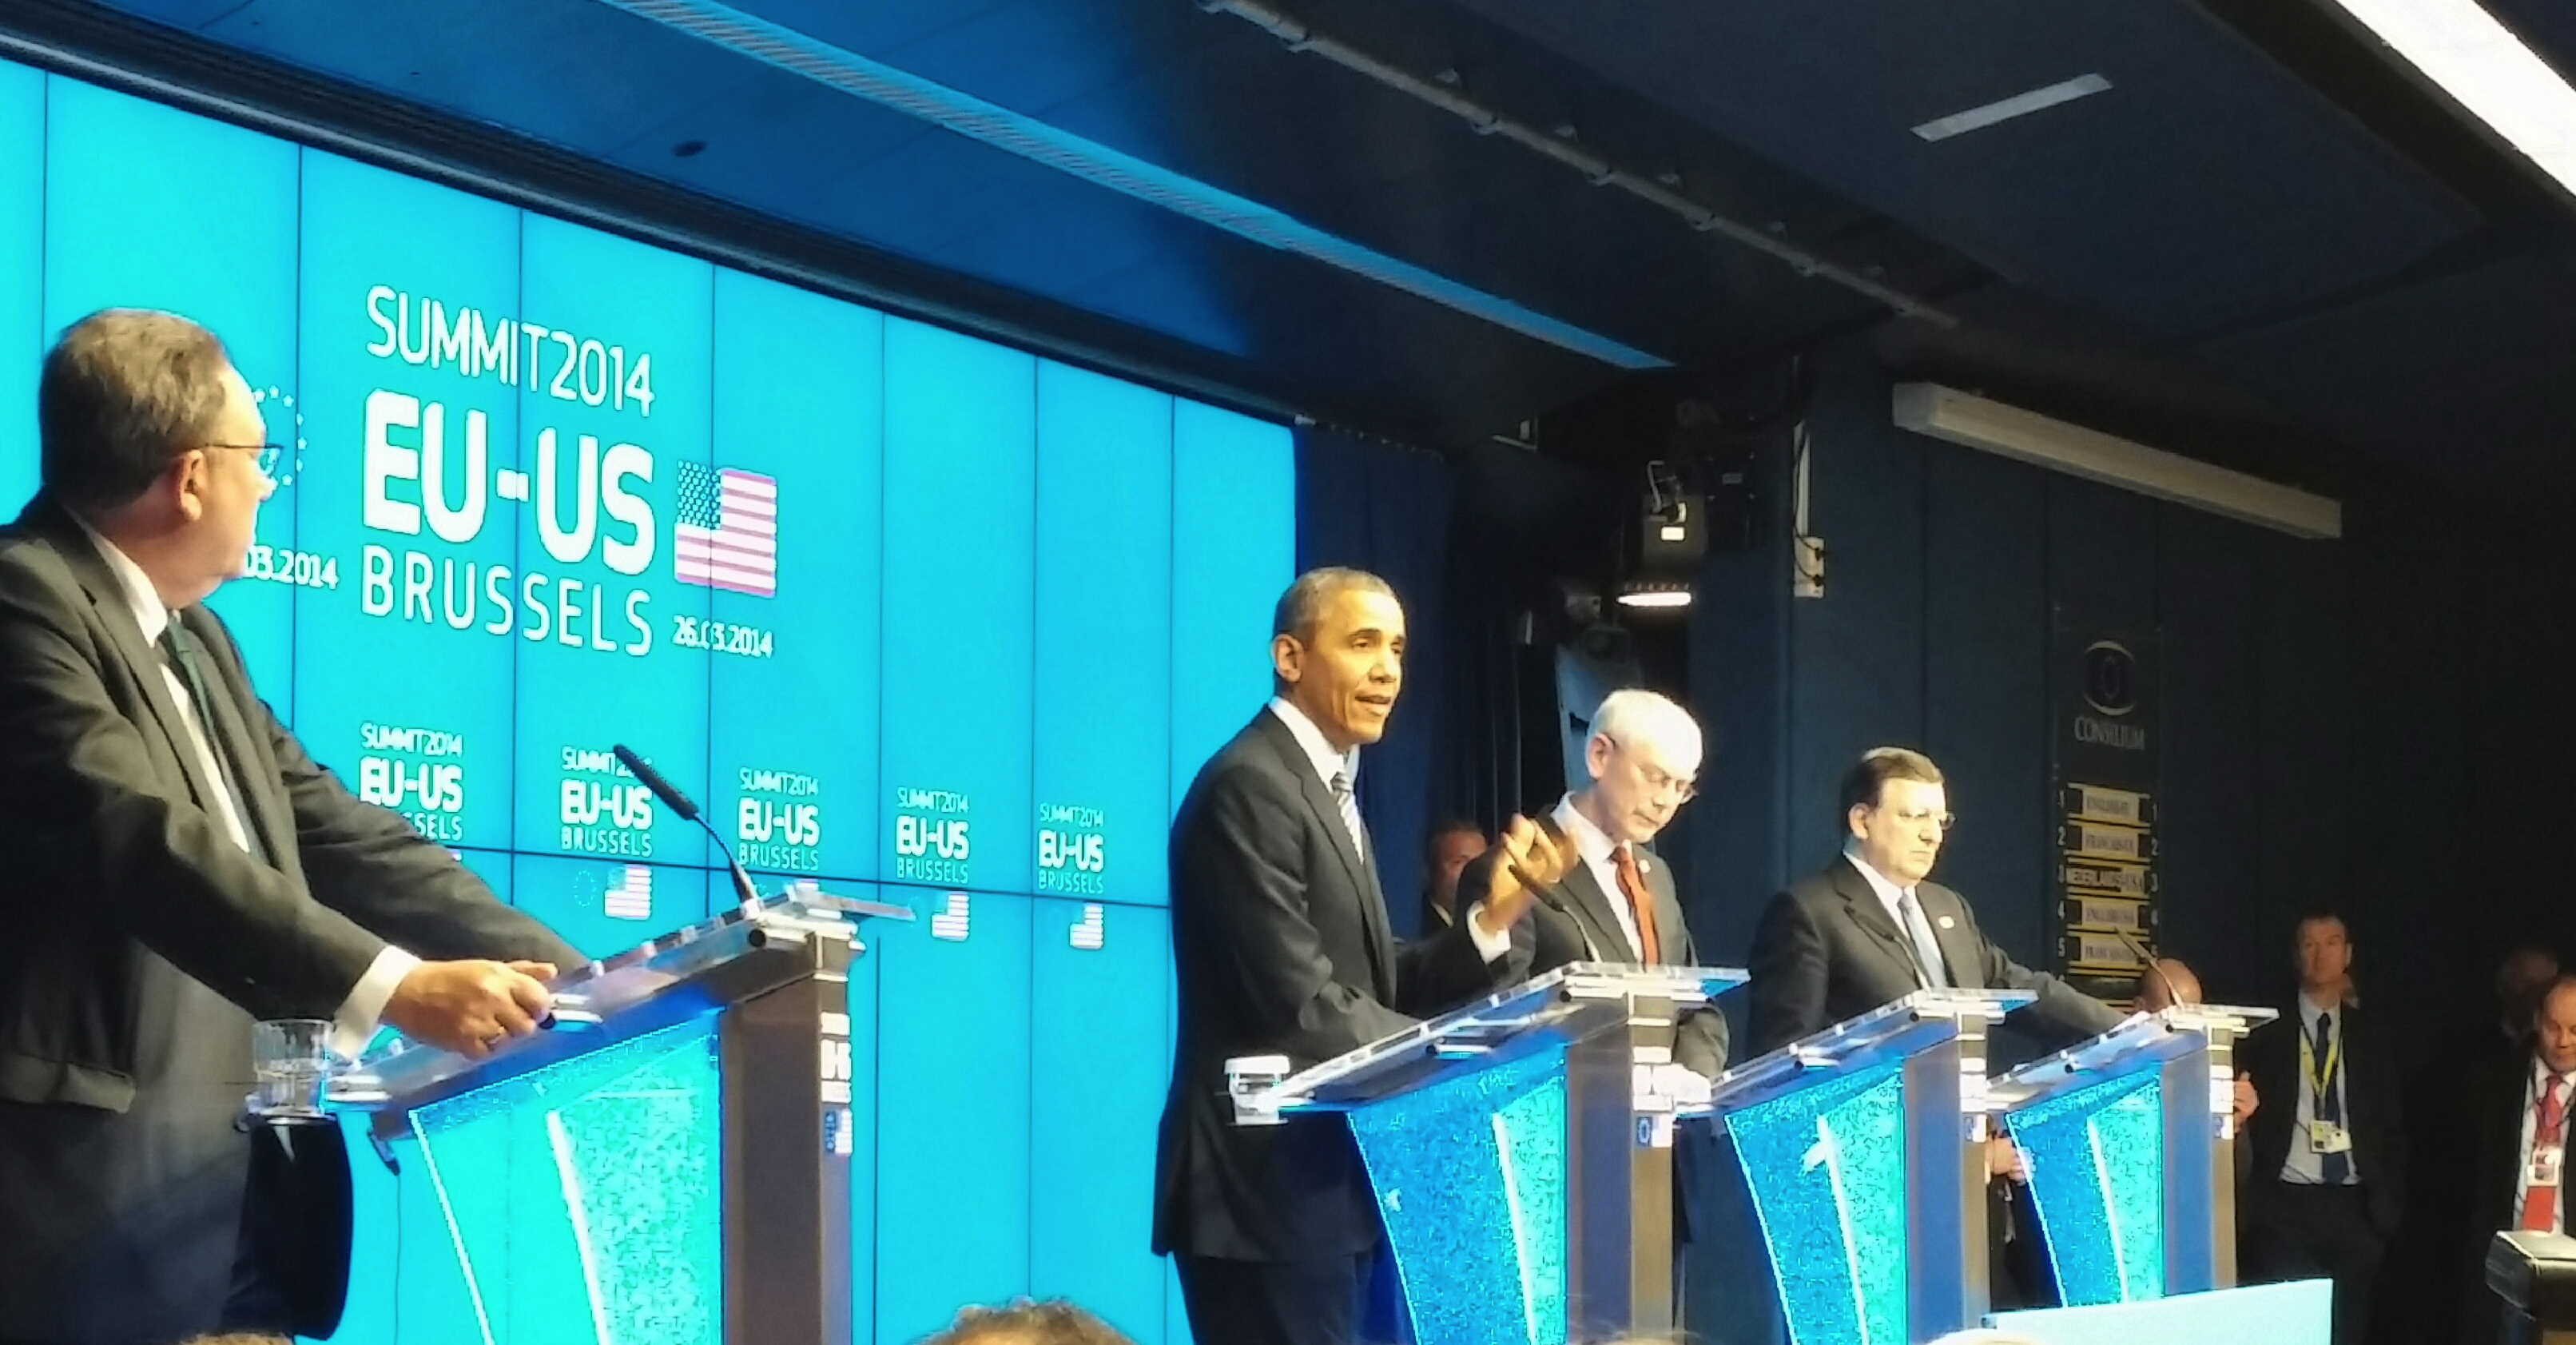 Obama Discusses Ukraine at EU-US Summit in Brussels